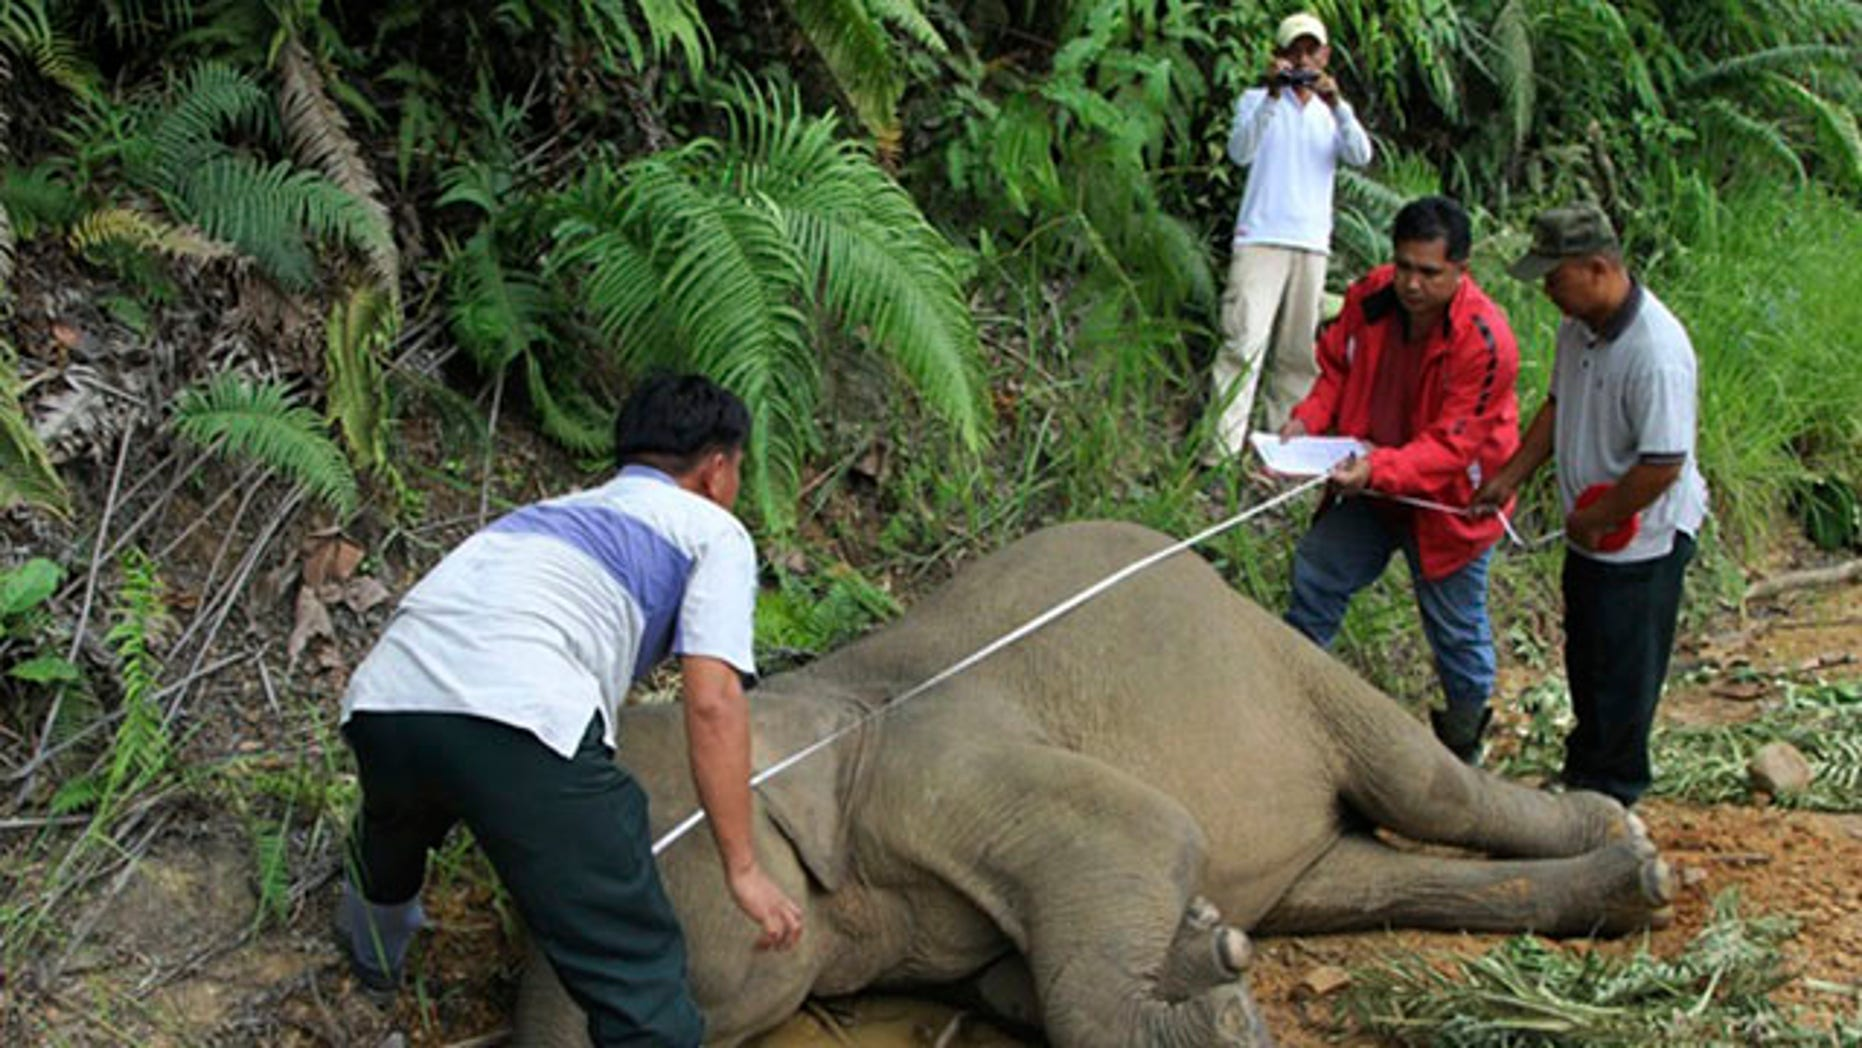 Jan. 23, 2013: Malaysian wildlife officials investigate a dead elephant at the Gunung Rara Forest Reserve in Sabah, Malaysia.